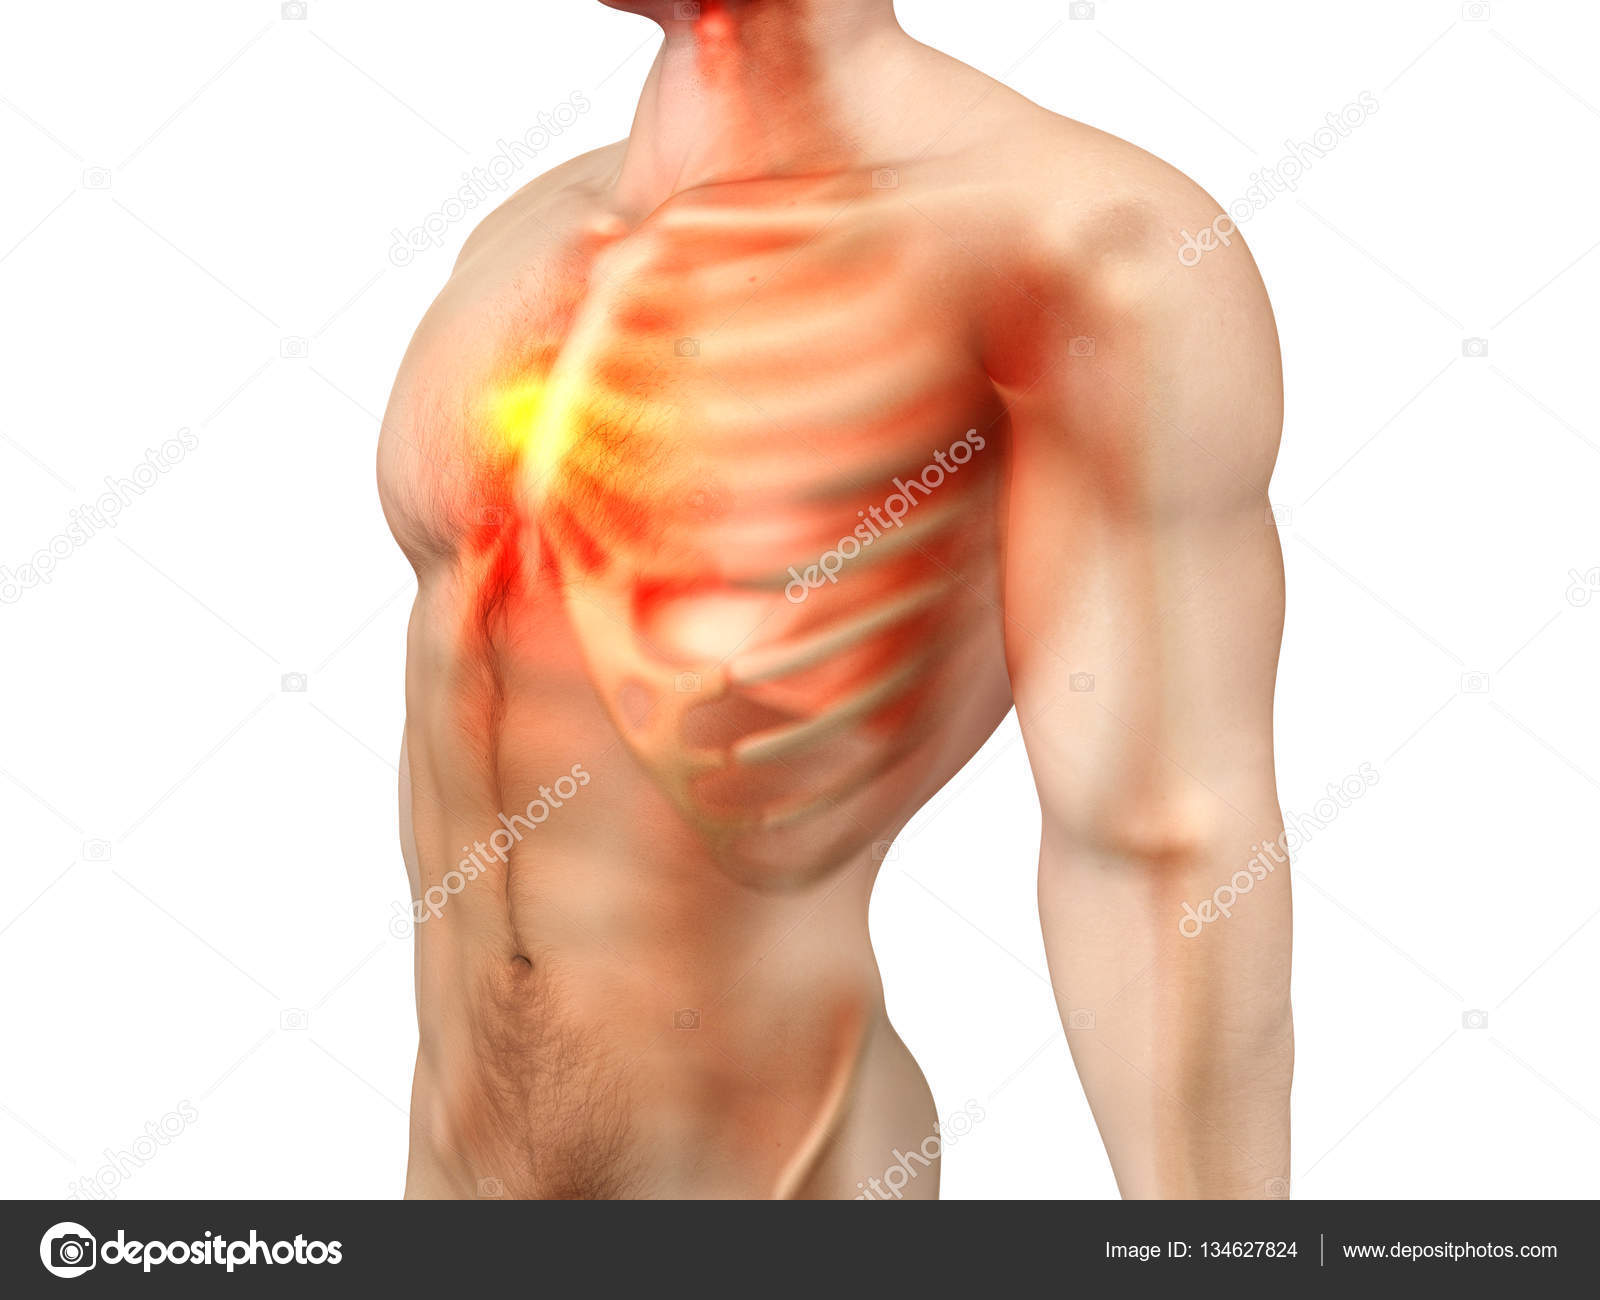 Male Anatomy - Chest Pain — Stock Photo © Spectral #134627824